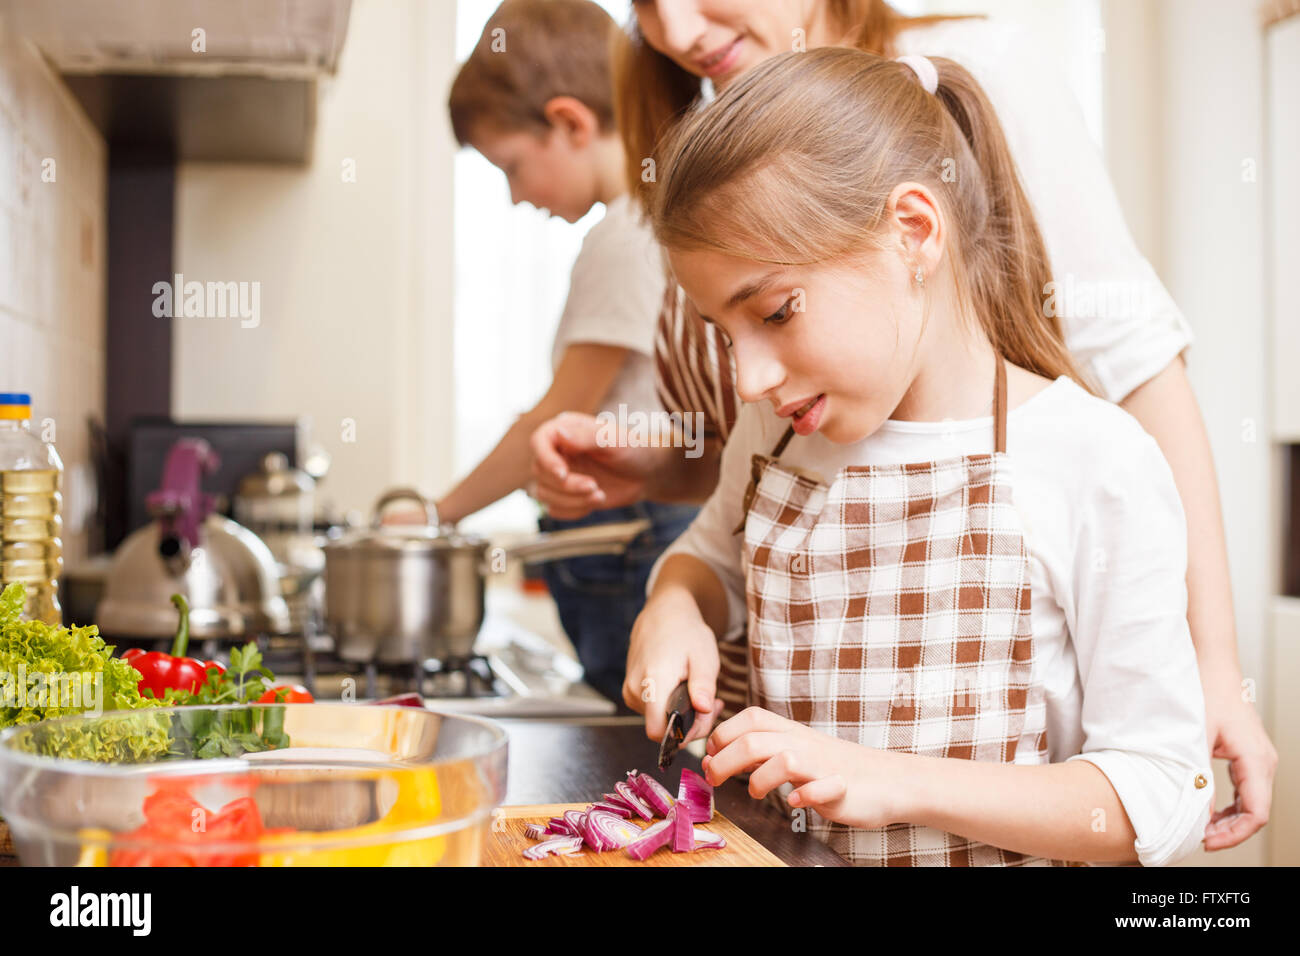 Family cooking background. Mum and daughter cutting onion for salad in the kitchen - Stock Image